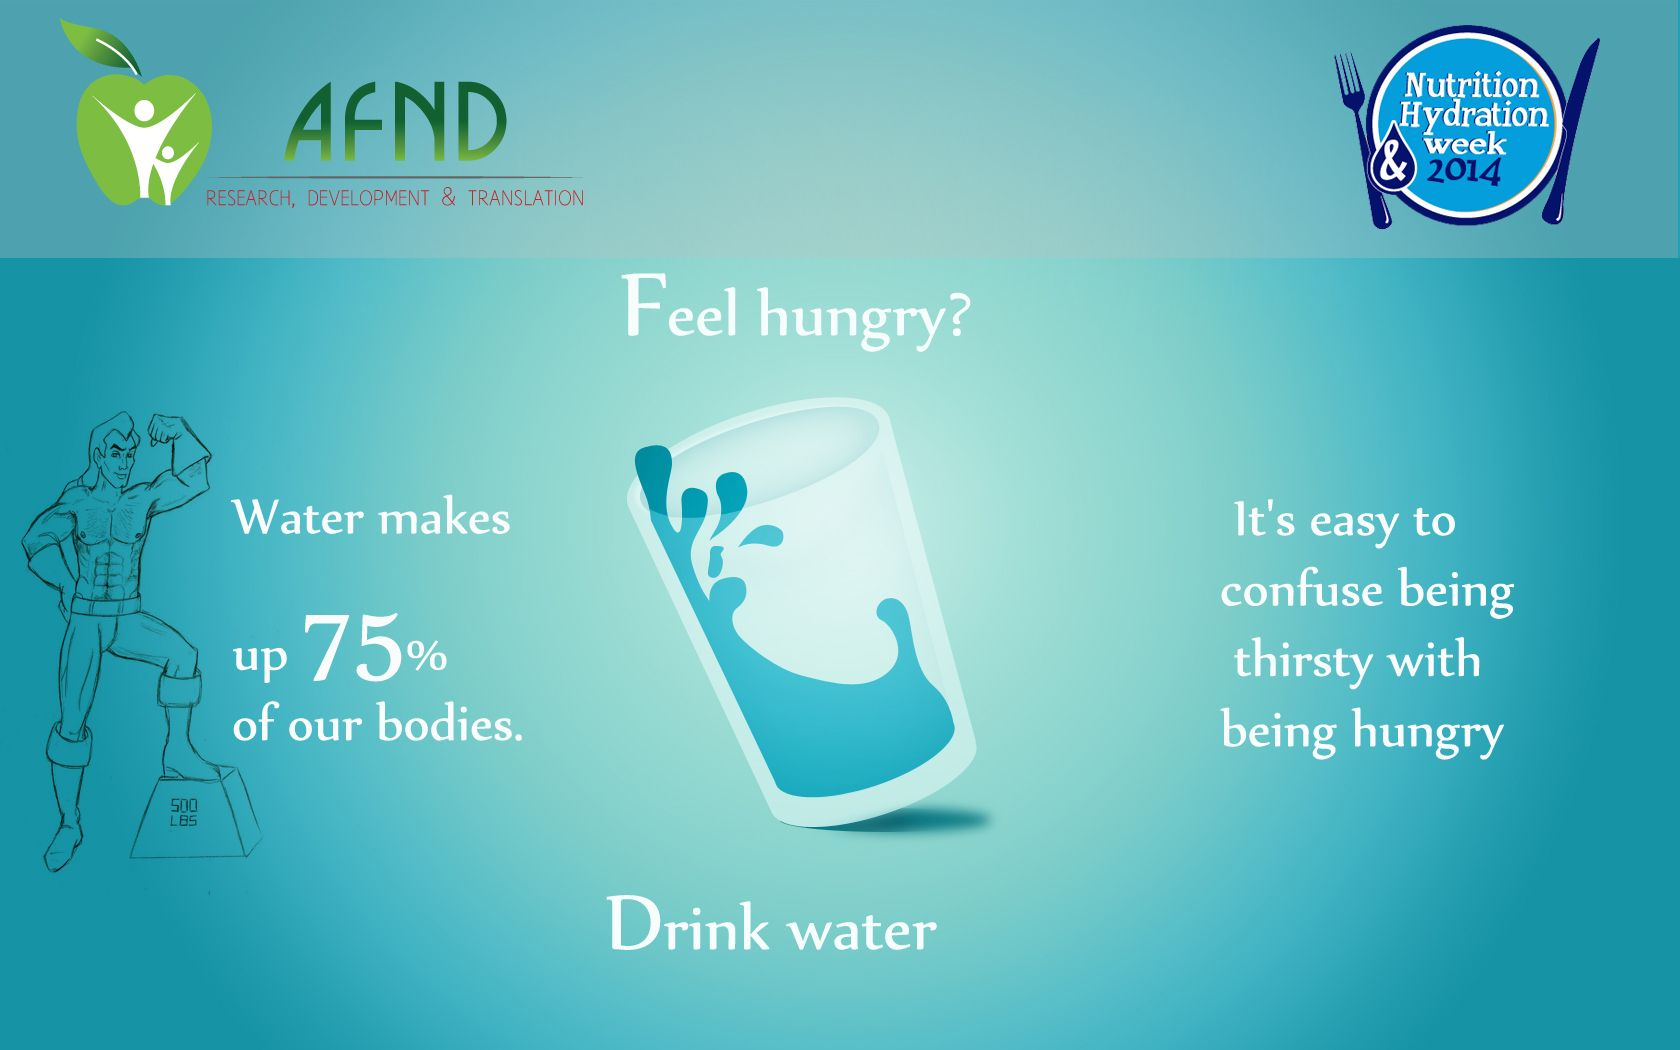 Drinking sufficient water impacts and improves health